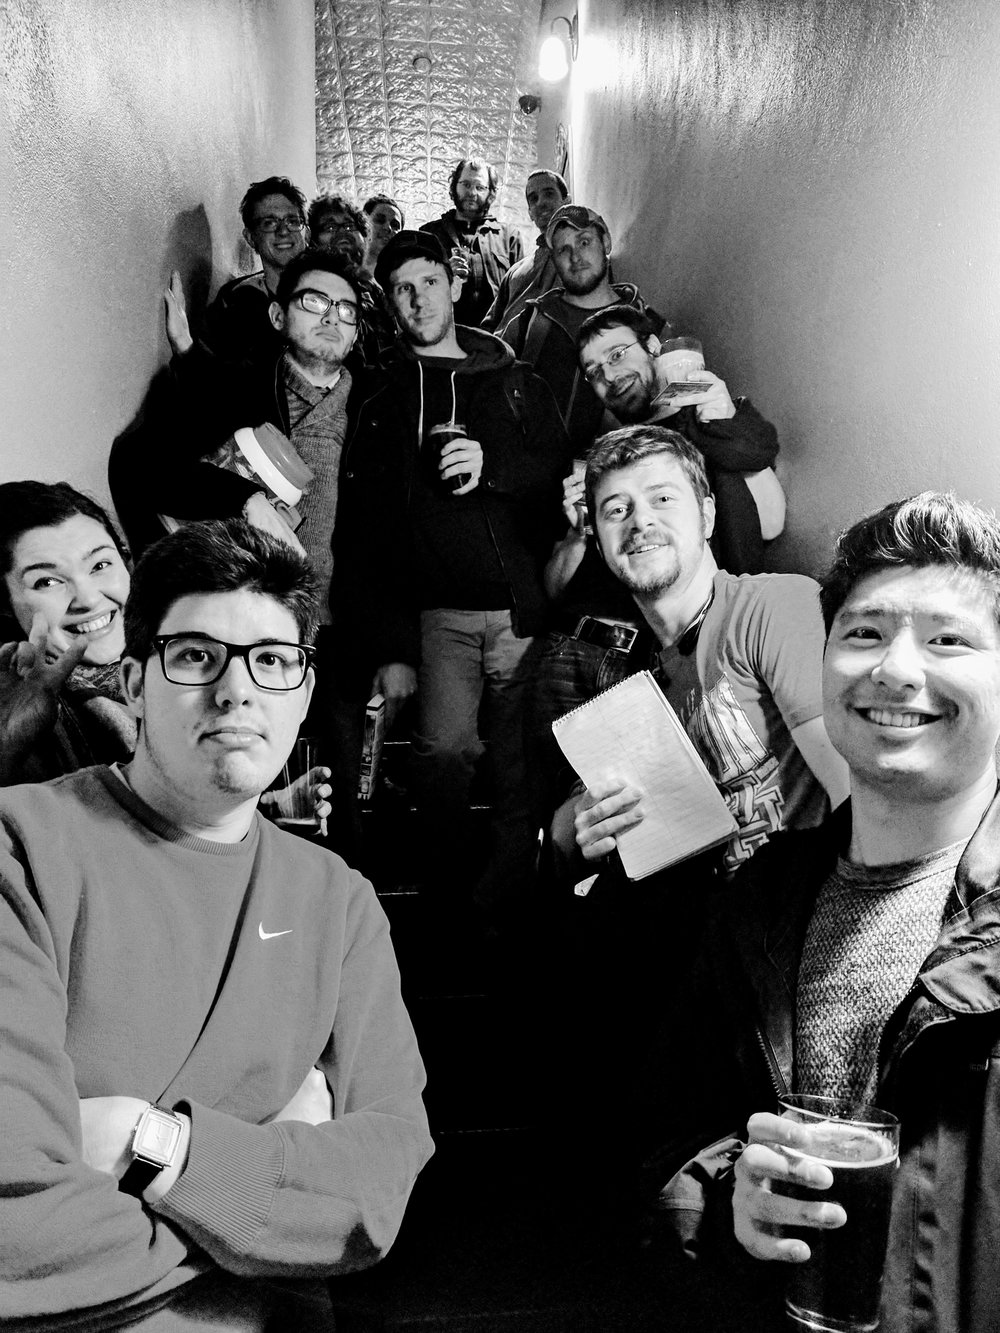 The crew waiting, notebooks in hand, to get into the Argus Underground Open Mic!